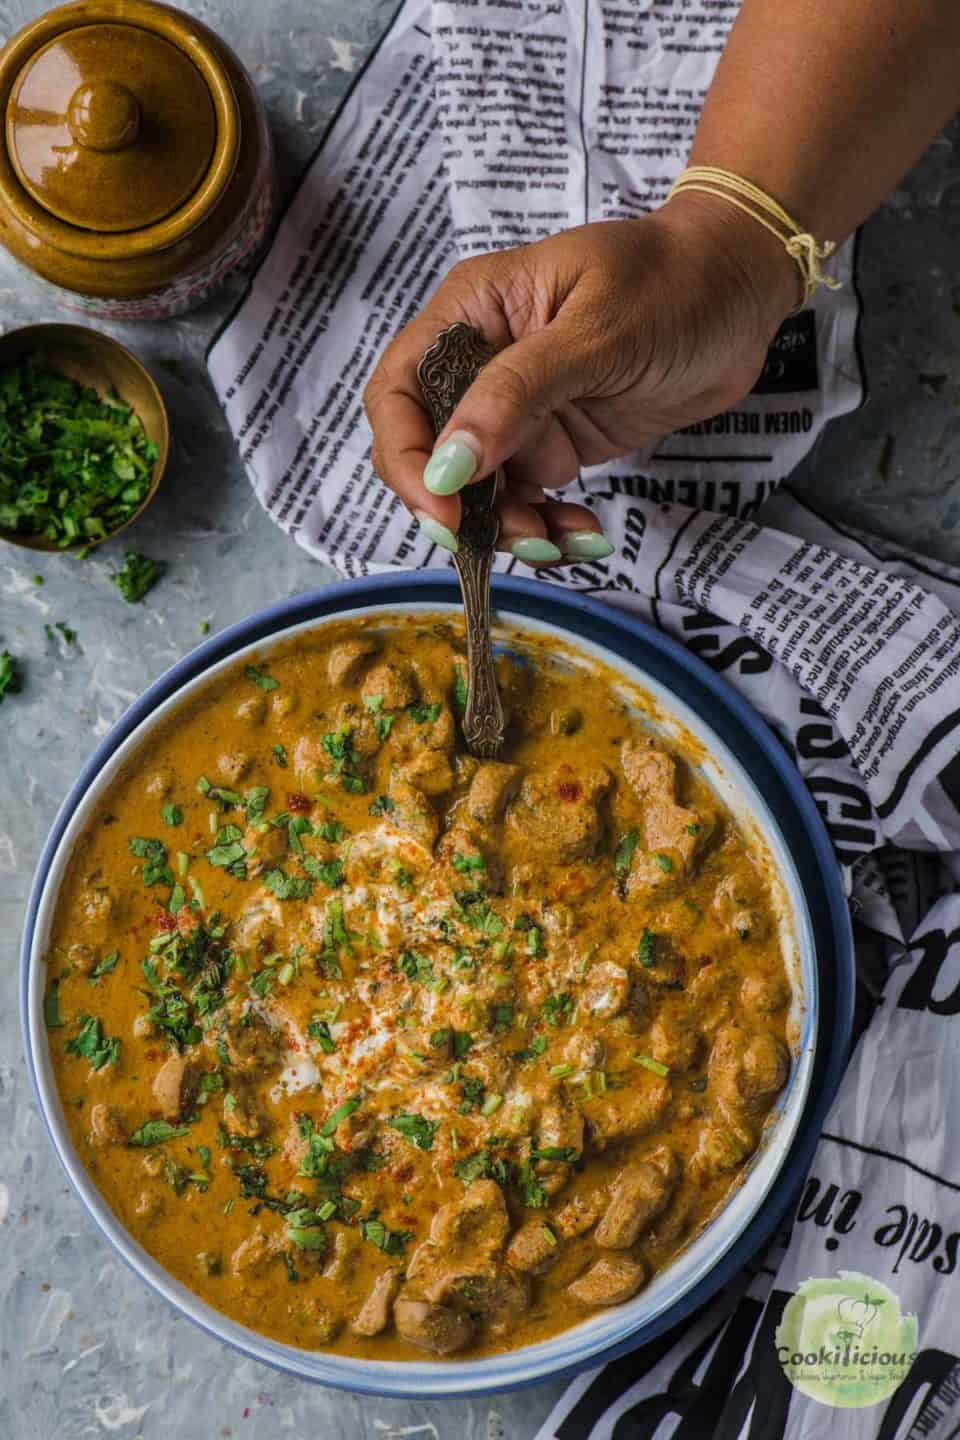 a hand holding a spoon and digging into a bowl of Mushroom Masala